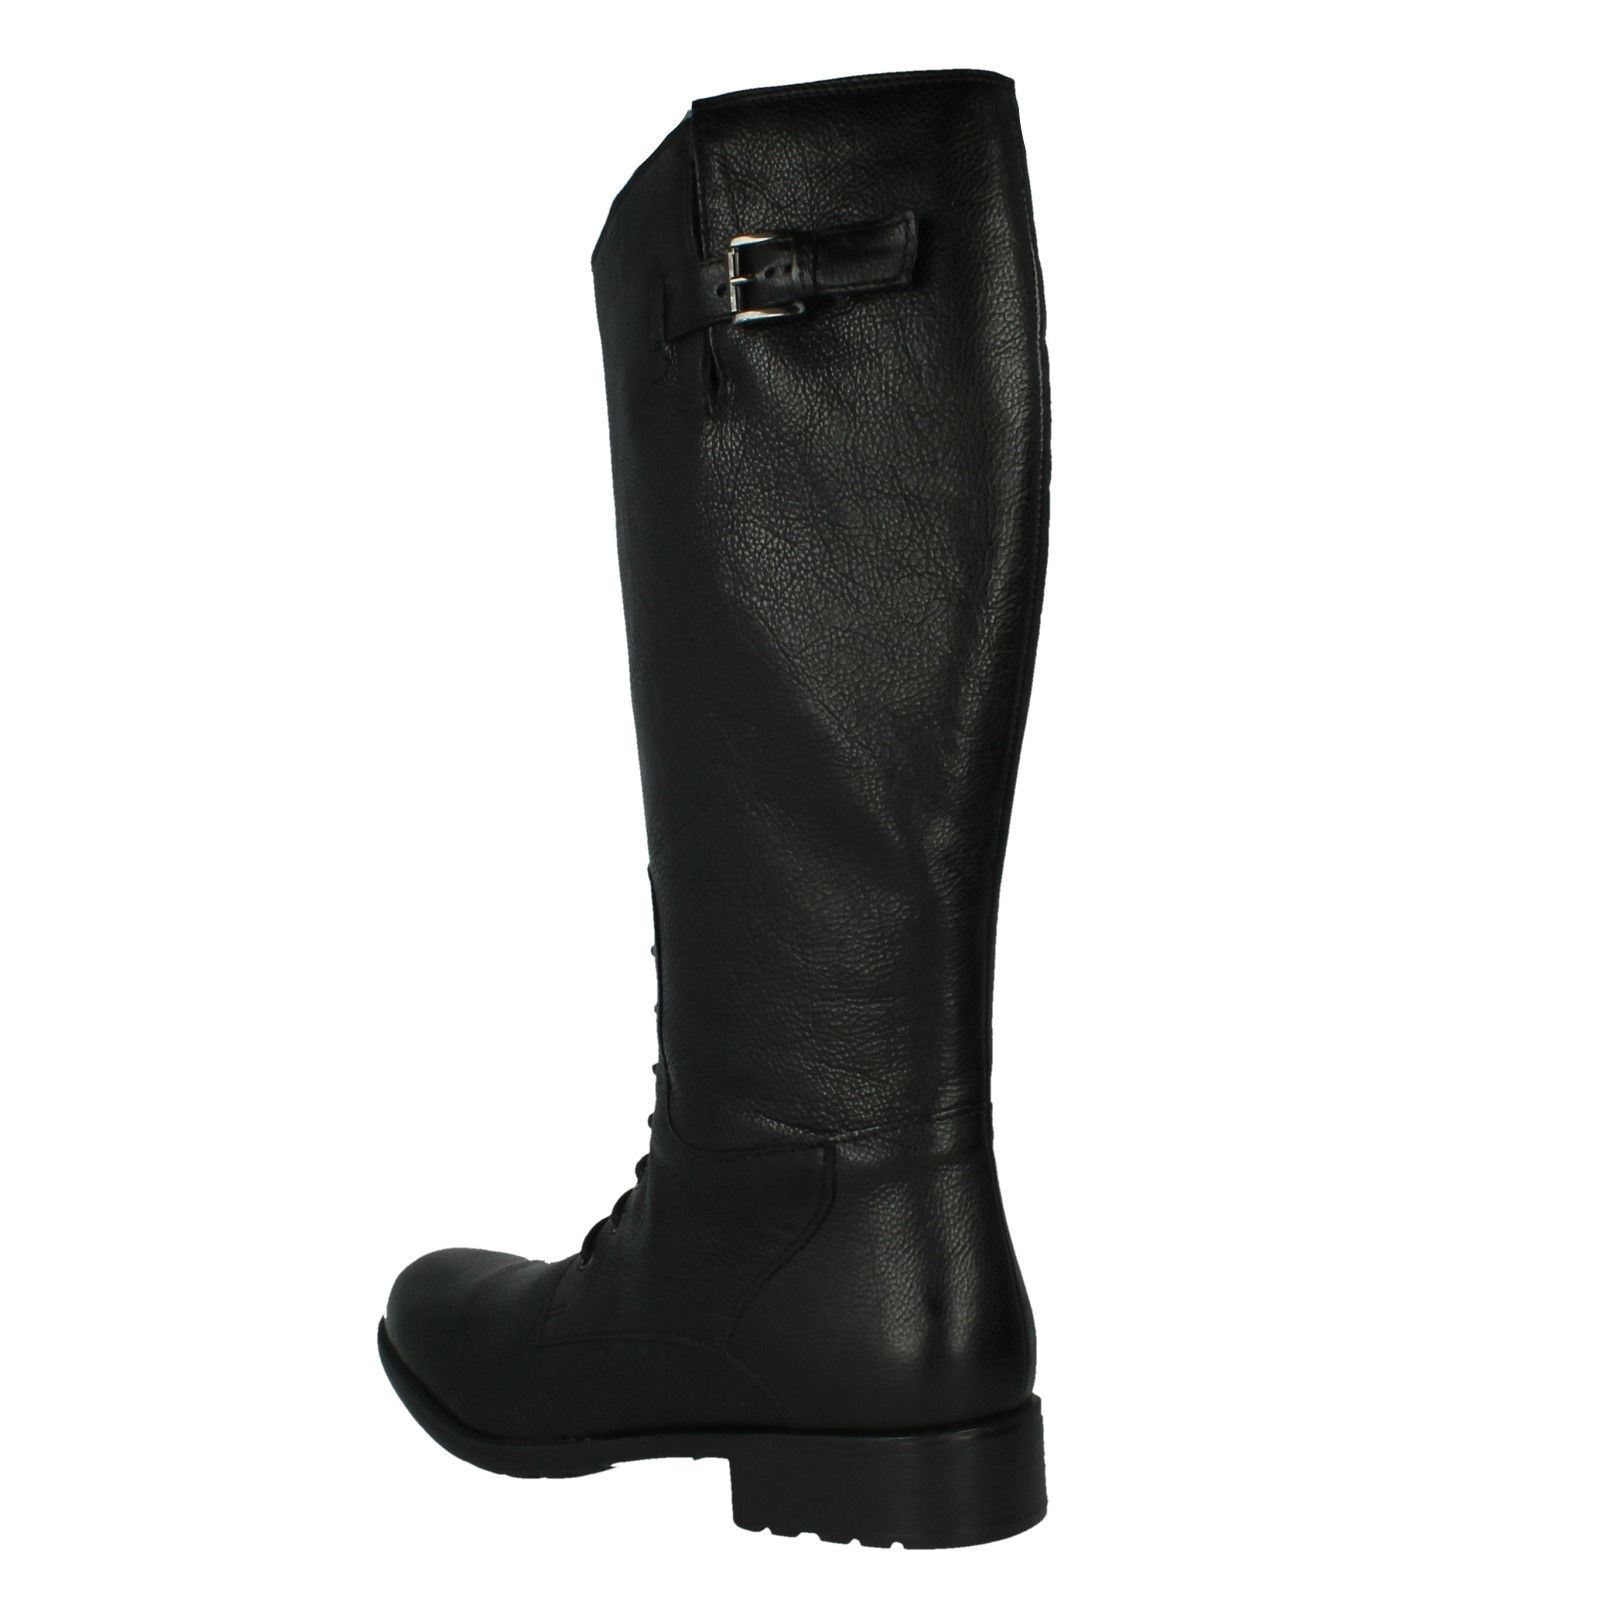 Zip Ladies Black Up Boots Knee Length Clove Mullin Clarks pqAqg